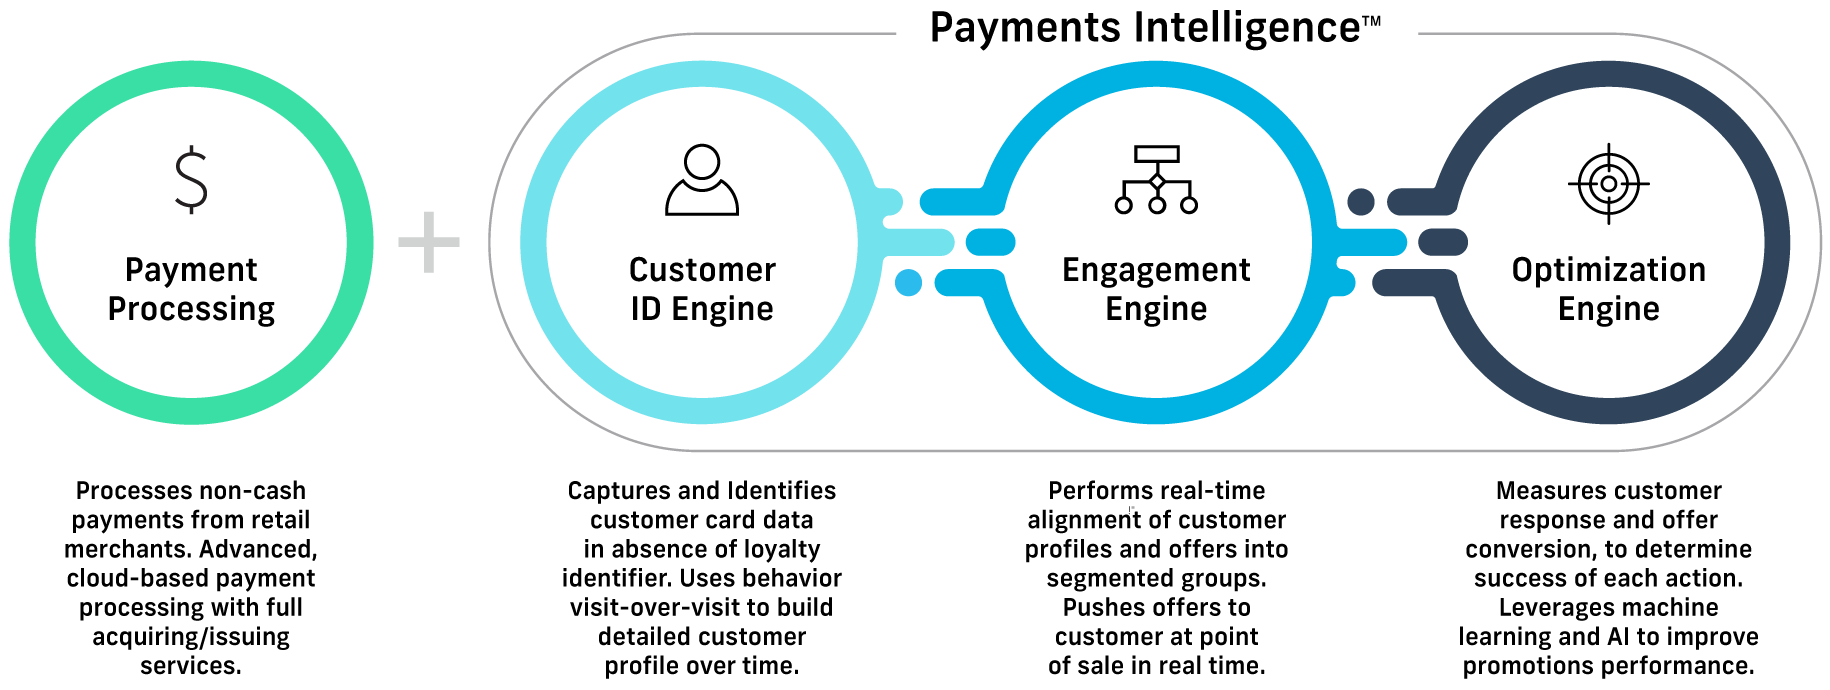 payment processing, customer id engine, engagement engine, optimization engine